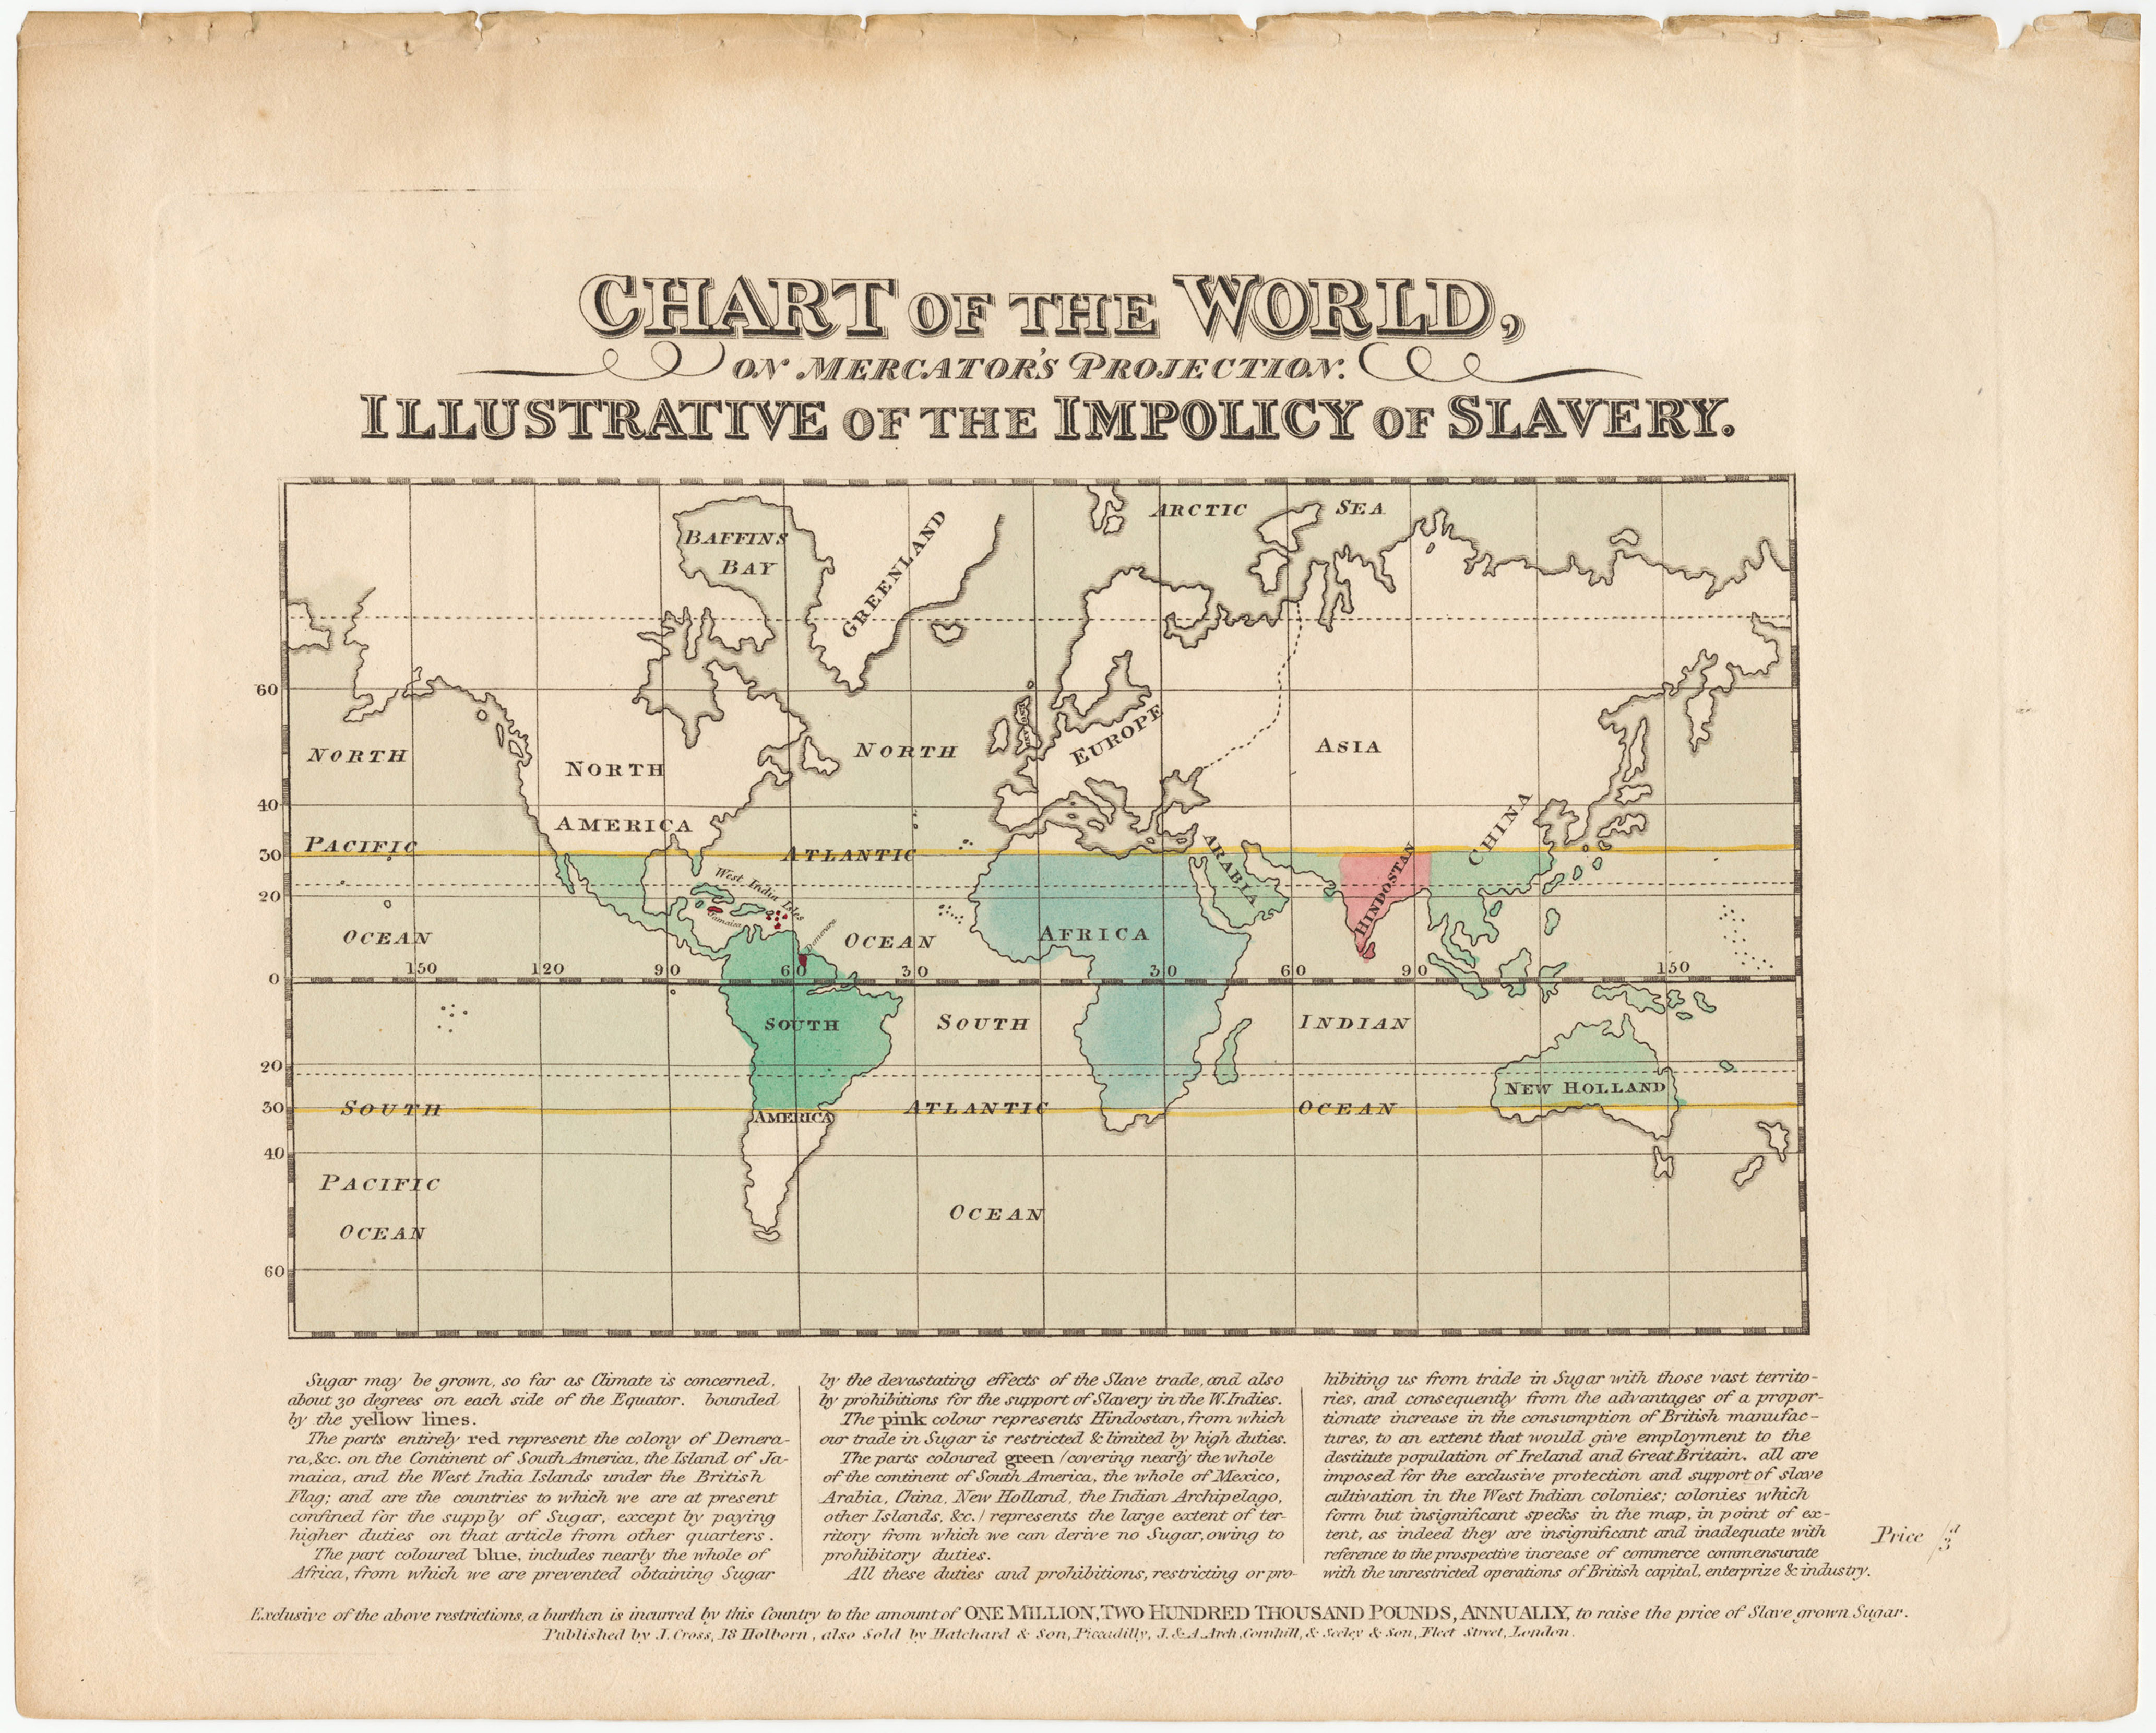 slave trade africa eric william s thesis capitalism and sl Capitalism and slavery research papers overview the book by eric williams of the african slave trade and thesis of capitalism and slavery in the first.